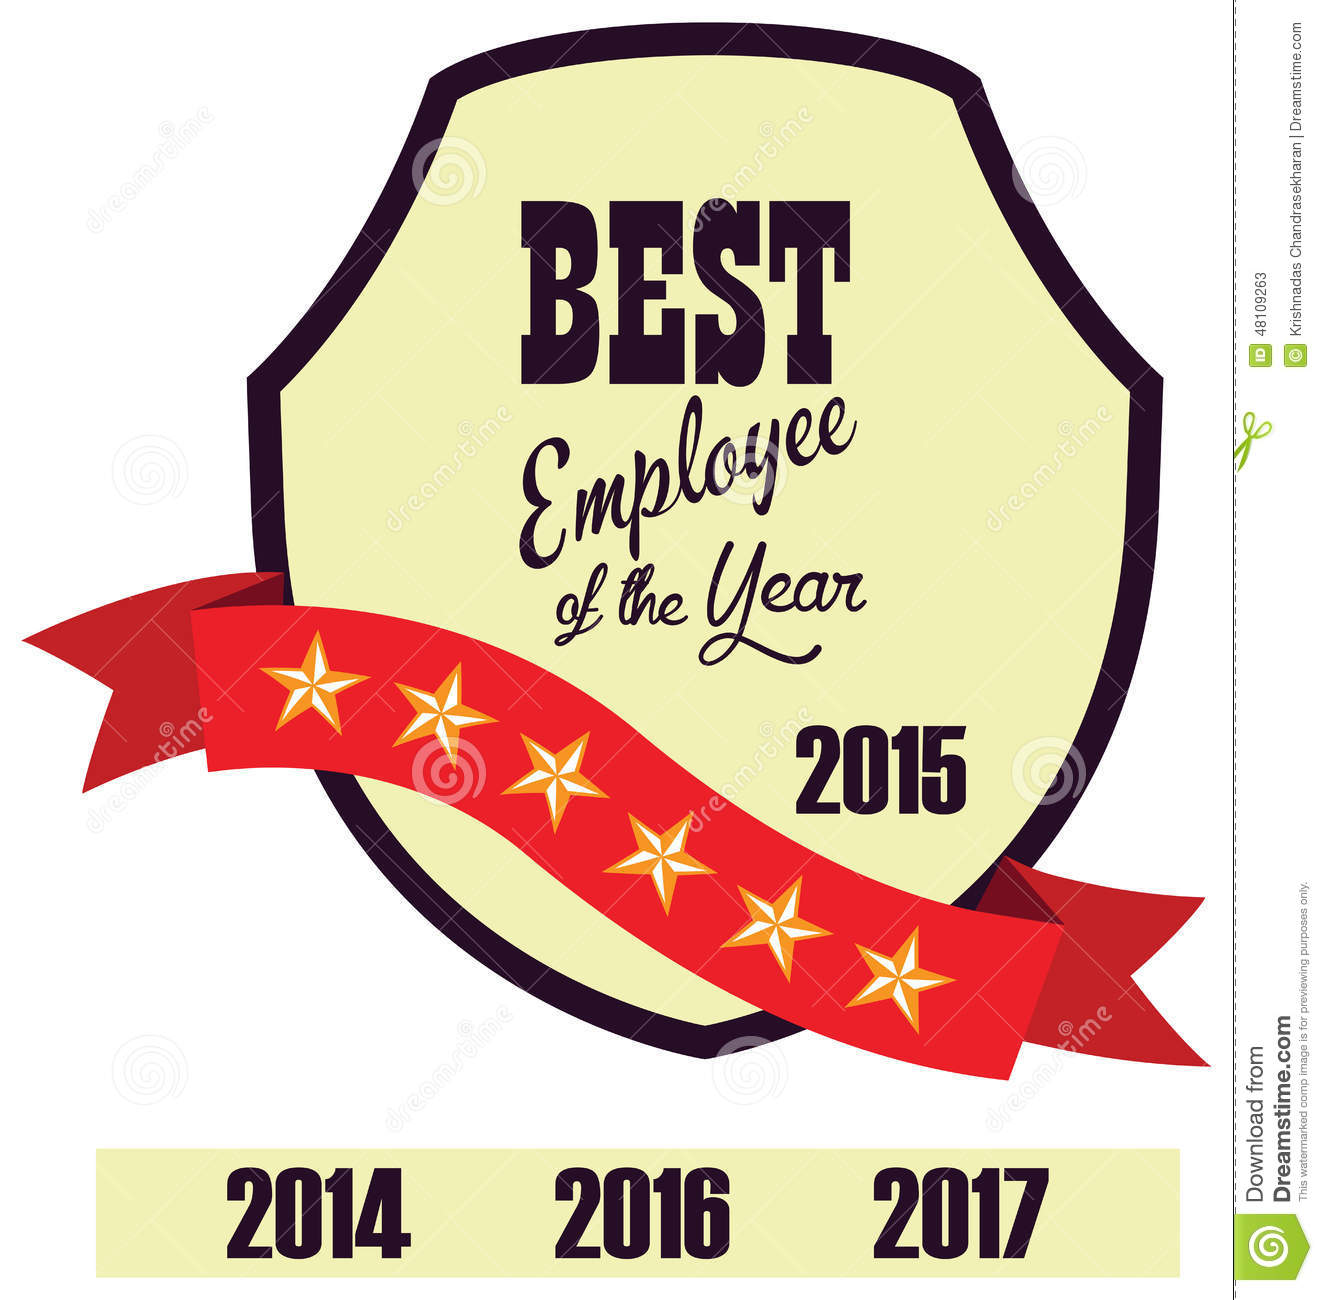 vector promo label of best employee service award of the